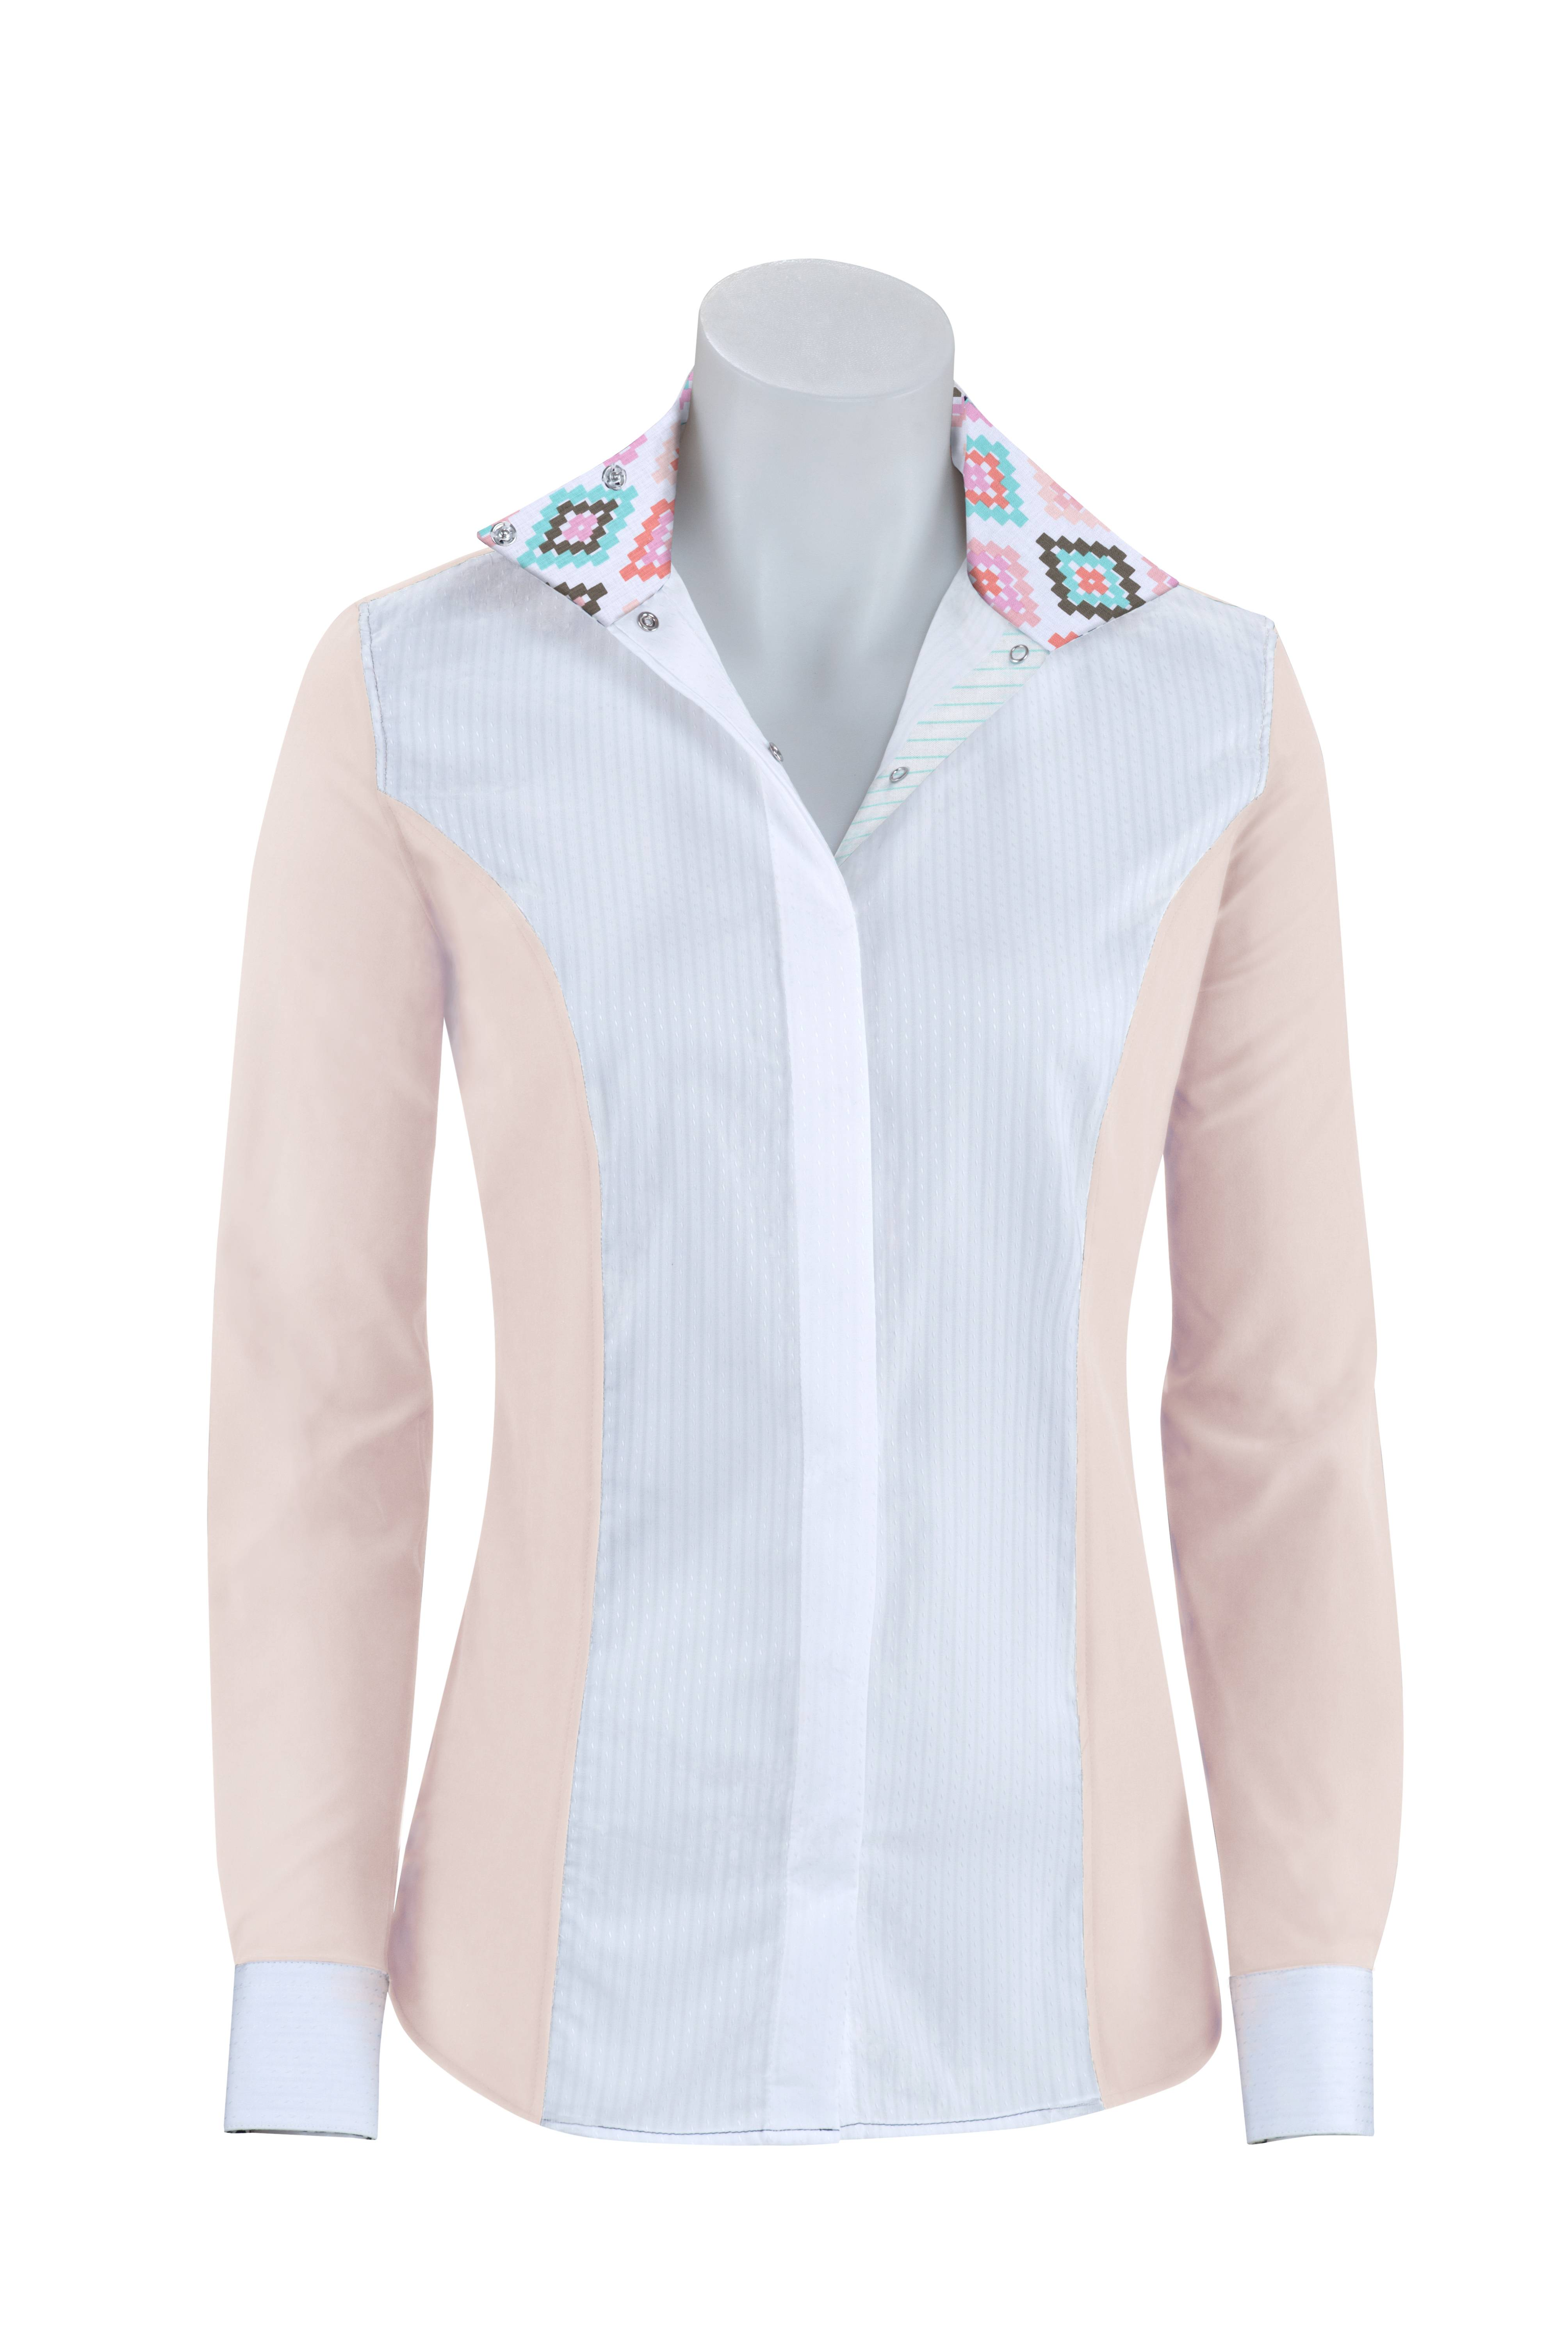 RJ Classics Prestige Windsor Show Shirt - Ladies - Blush/Aztec